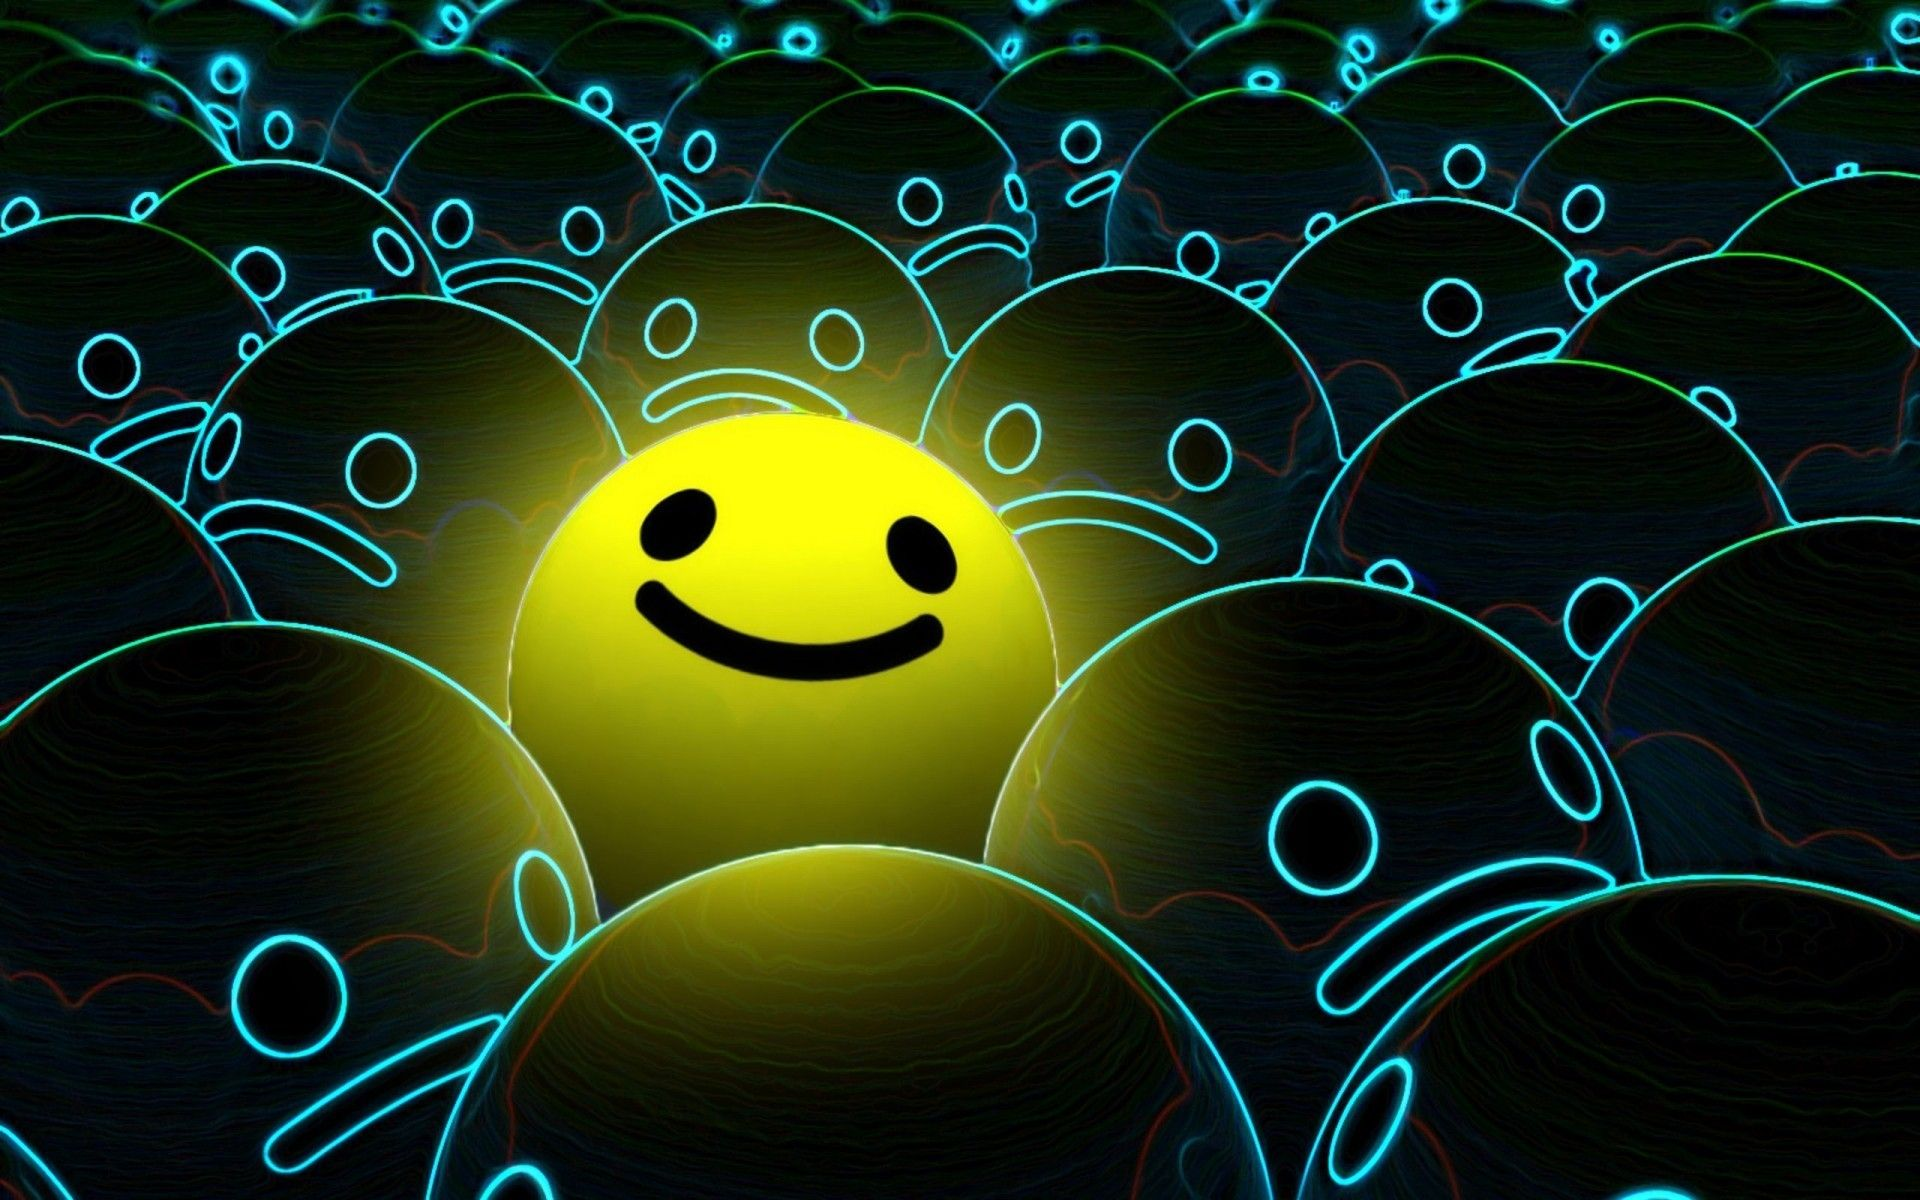 smiley face background hd wallpaper for mobile Facebook ...